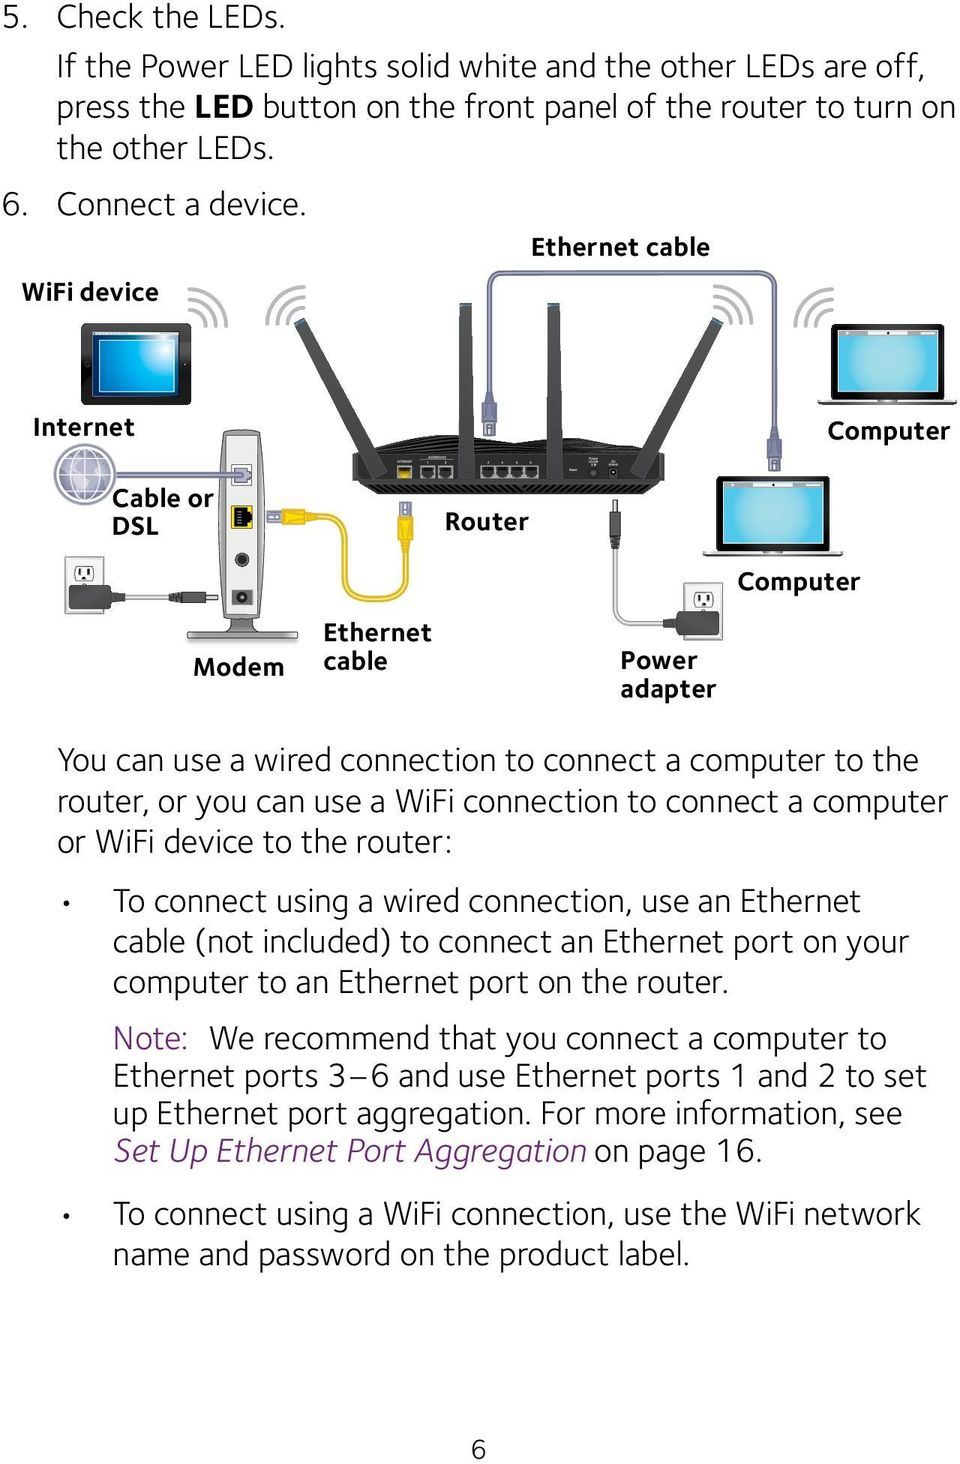 connection to connect a computer or WiFi device to the router: To connect using a wired connection, use an Ethernet cable (not included) to connect an Ethernet port on your computer to an Ethernet